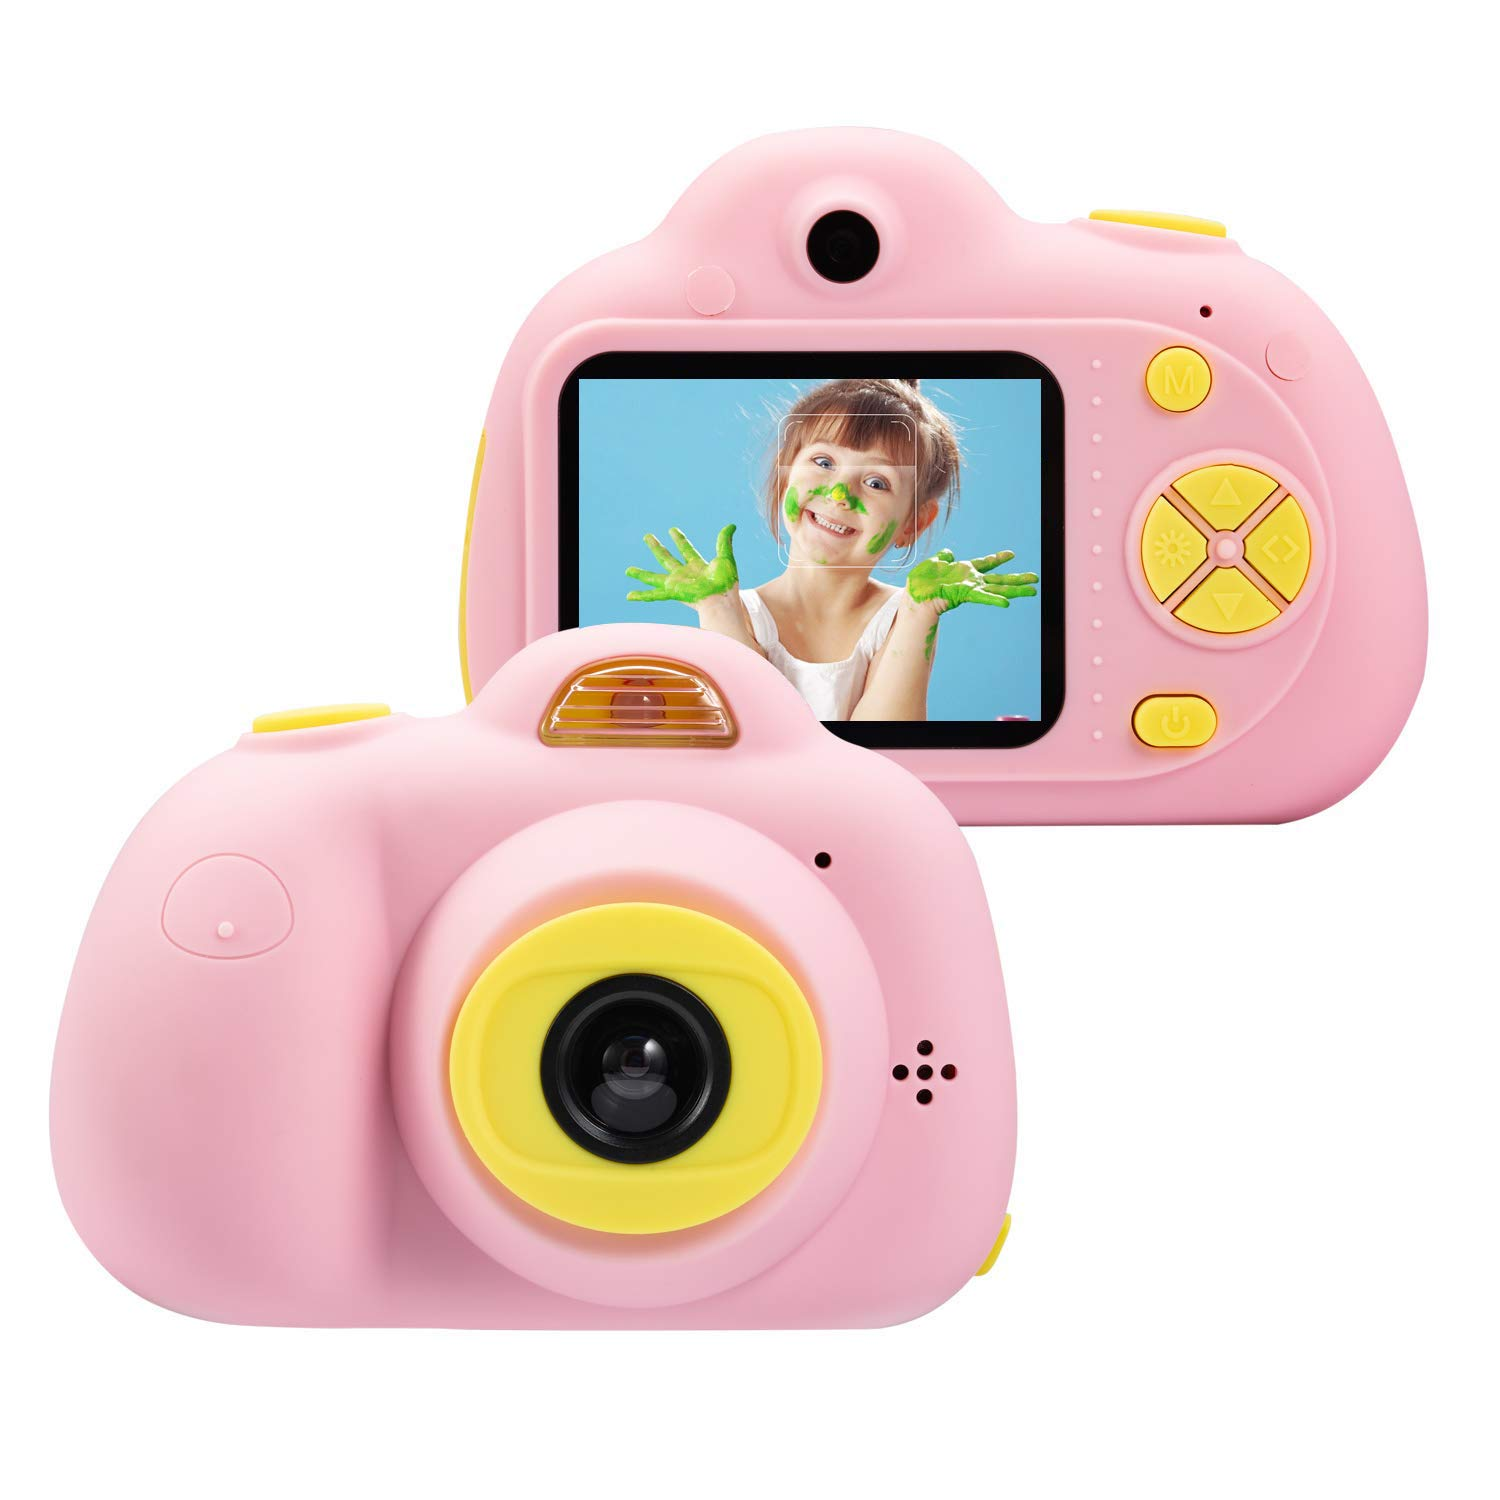 DIIGIITO Kids Camera Gifts for 4-8 Year Old Girls, Shockproof Cameras Great Gift Mini Child Camcorder for Little Girl with Soft Silicone Shell for Outdoor Play,(16GB Memory Card Included) (Pink)